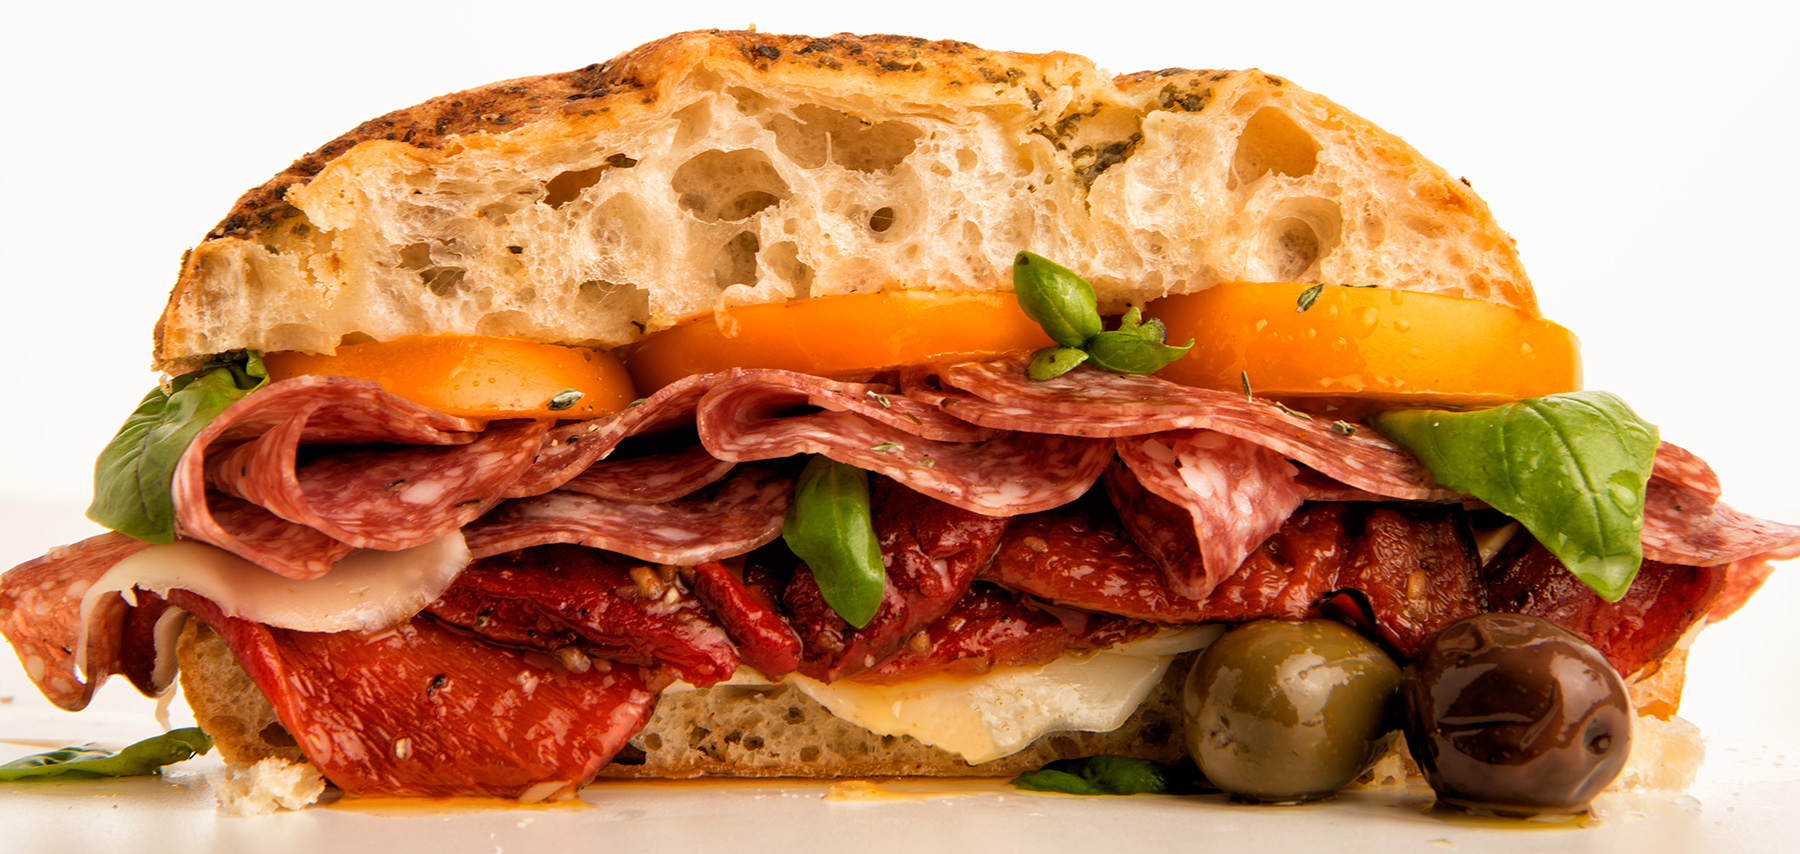 Italian-Sandwich-Carl-Kravats-Photography